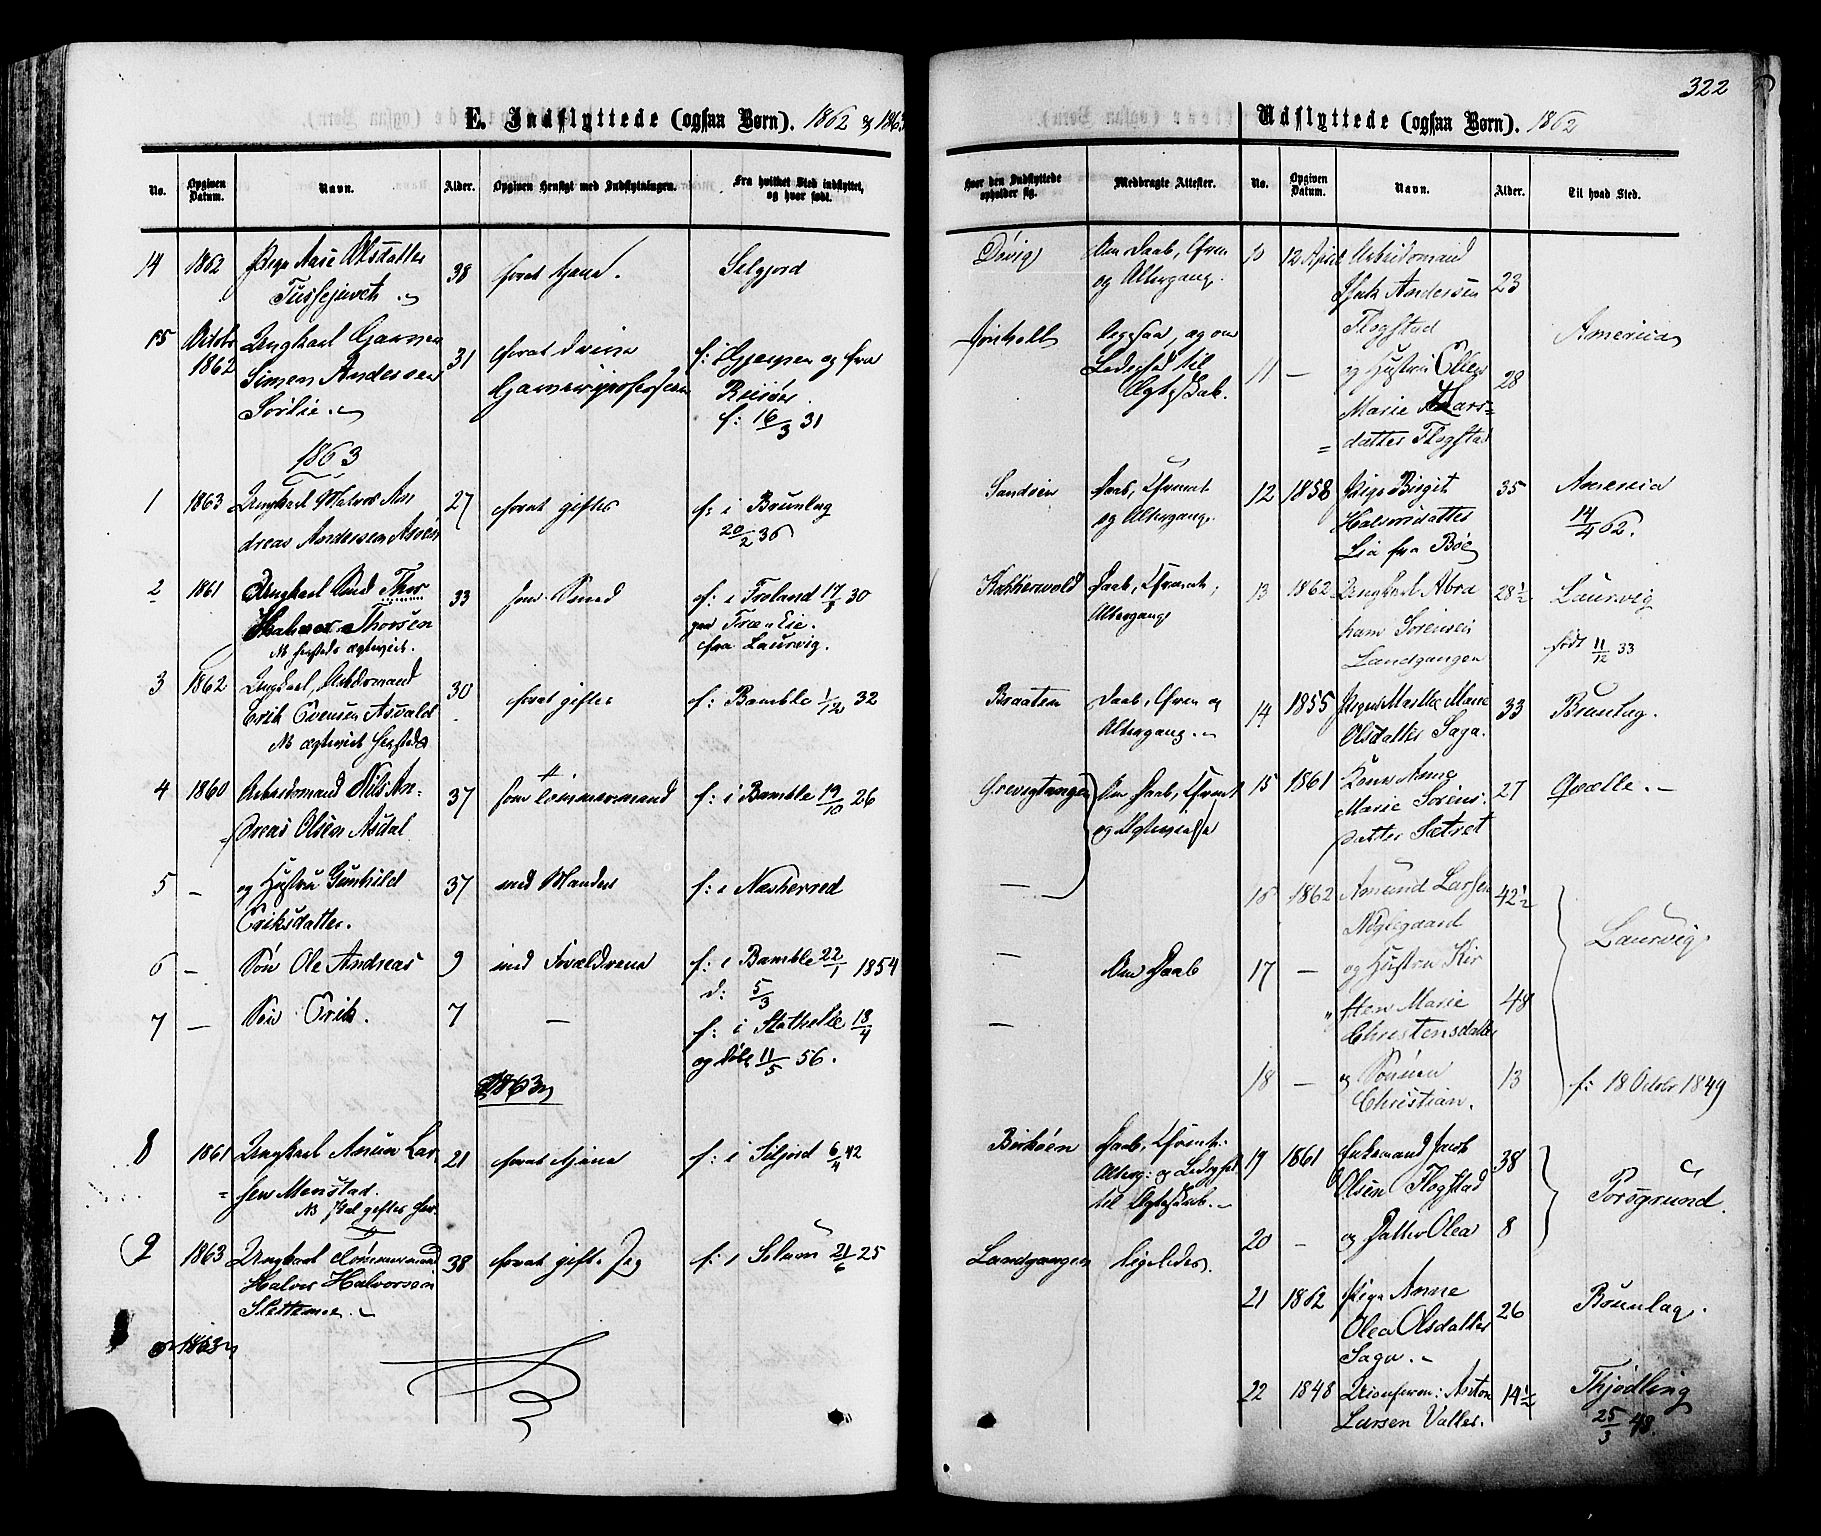 SAKO, Eidanger kirkebøker, F/Fa/L0010: Parish register (official) no. 10, 1859-1874, p. 322